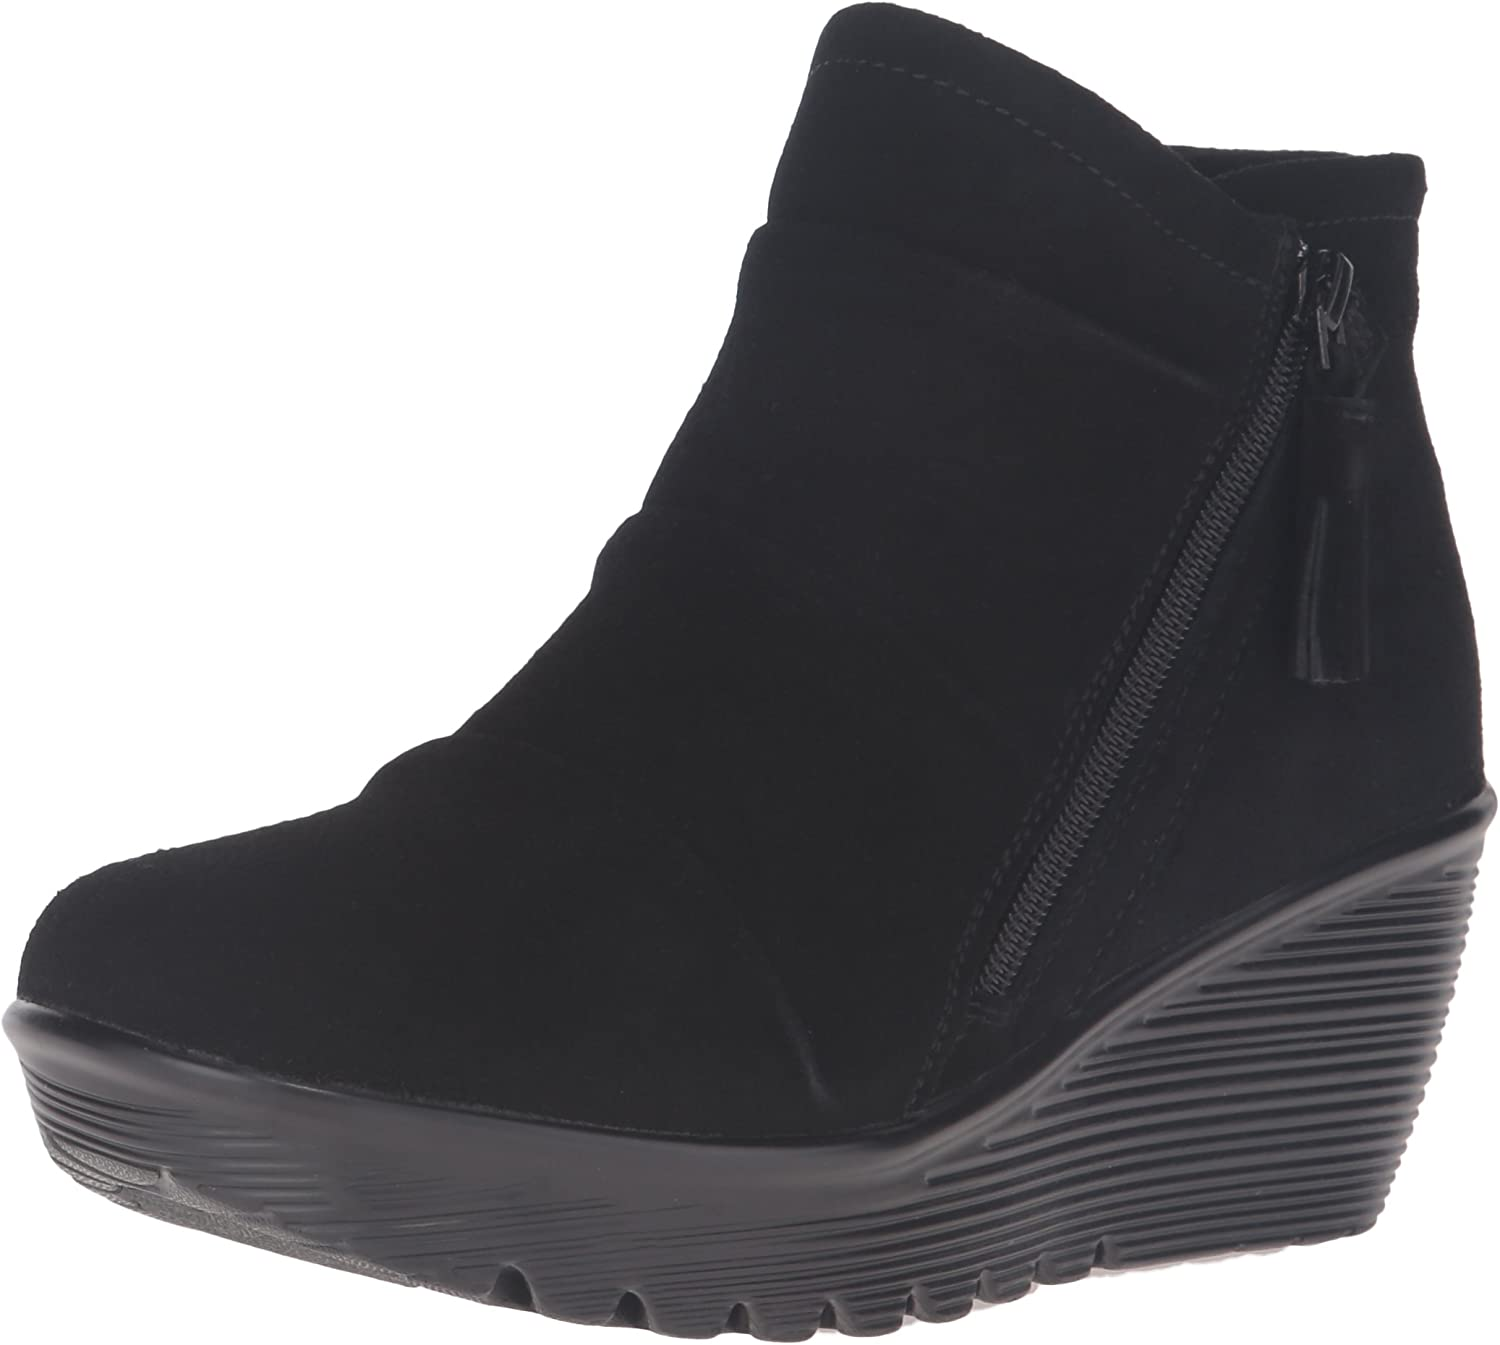 Parallel-Triple Threat Ankle Bootie